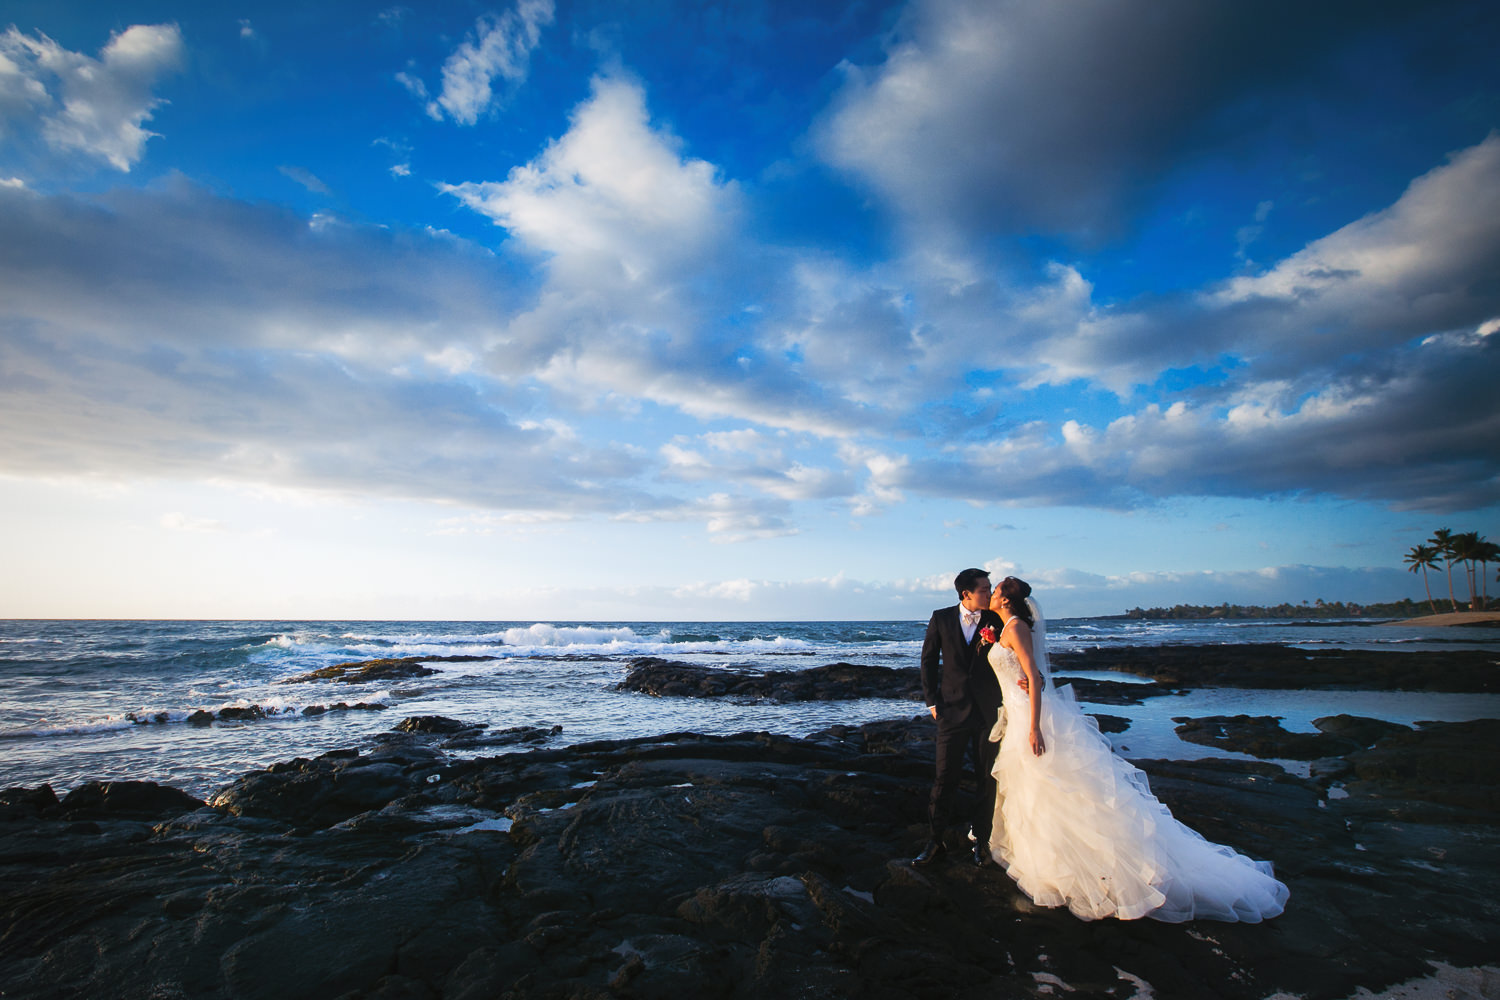 Another great place for wedding photos on the Big Island is this beach at Four Seasons Hualalai